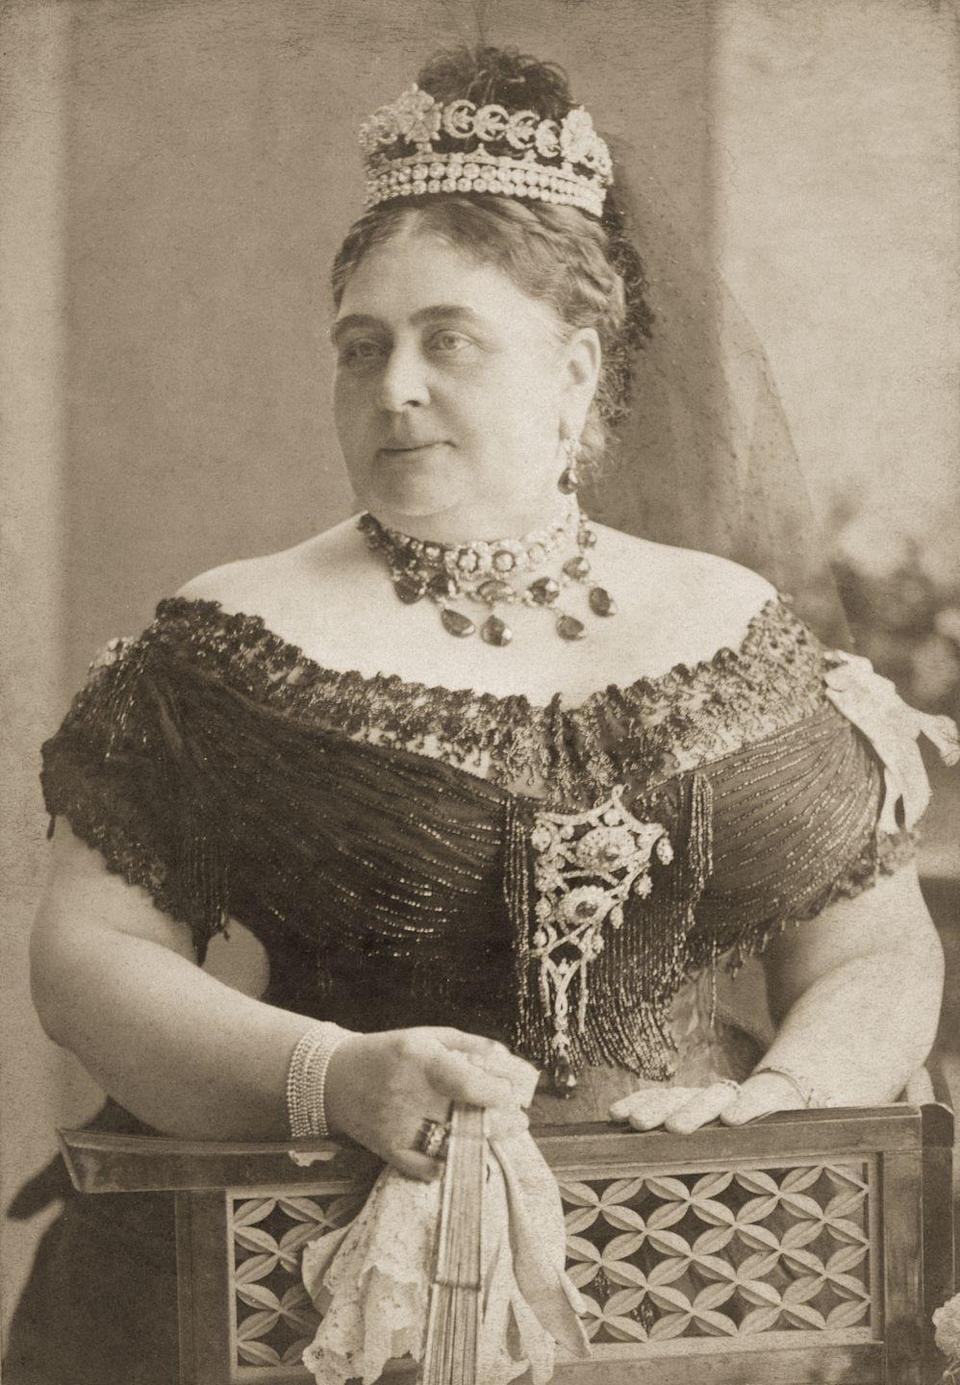 "<p>The Teck Crescent Tiara, characterized by its three diamond roses and 20 diamond crescents, was created from pieces of jewels inherited by Queen Mary's mother, the Duchess of Teck, from her aunt, the Duchess of Gloucester. It eventually found its way into the Queen Mother's possession, and was later inherited by Queen Elizabeth, but hasn't been seen in public since 1939, per the <a href=""http://www.thecourtjeweller.com/2017/01/the-teck-crescent-tiara.html"" rel=""nofollow noopener"" target=""_blank"" data-ylk=""slk:Court Jeweller"" class=""link rapid-noclick-resp"">Court Jeweller</a>.<br></p>"